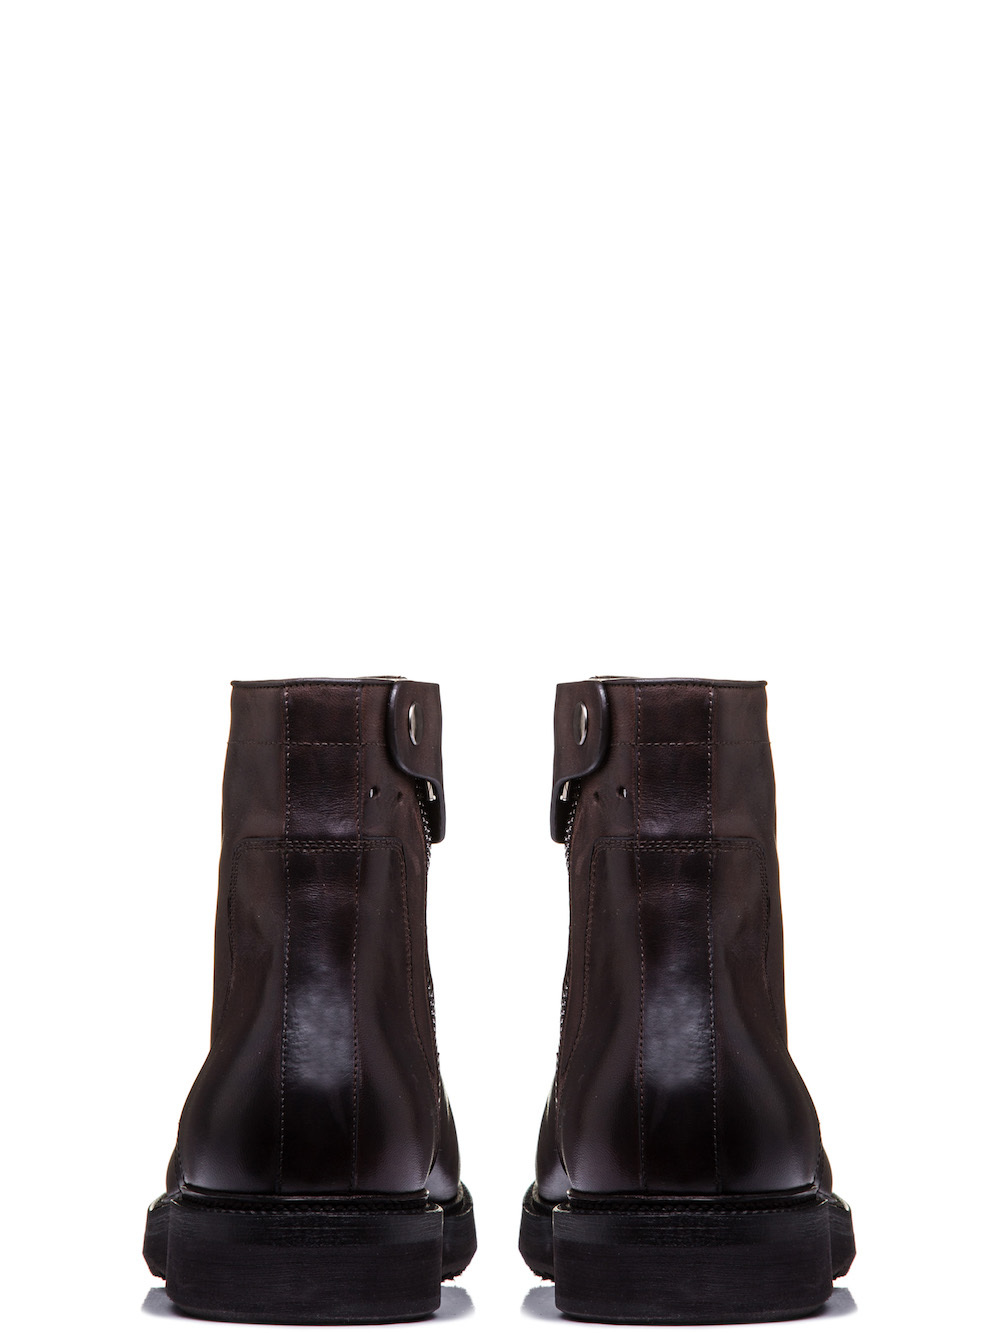 RICK OWENS CREEPER SLIM BOOTS WITH CREEPER SOLE